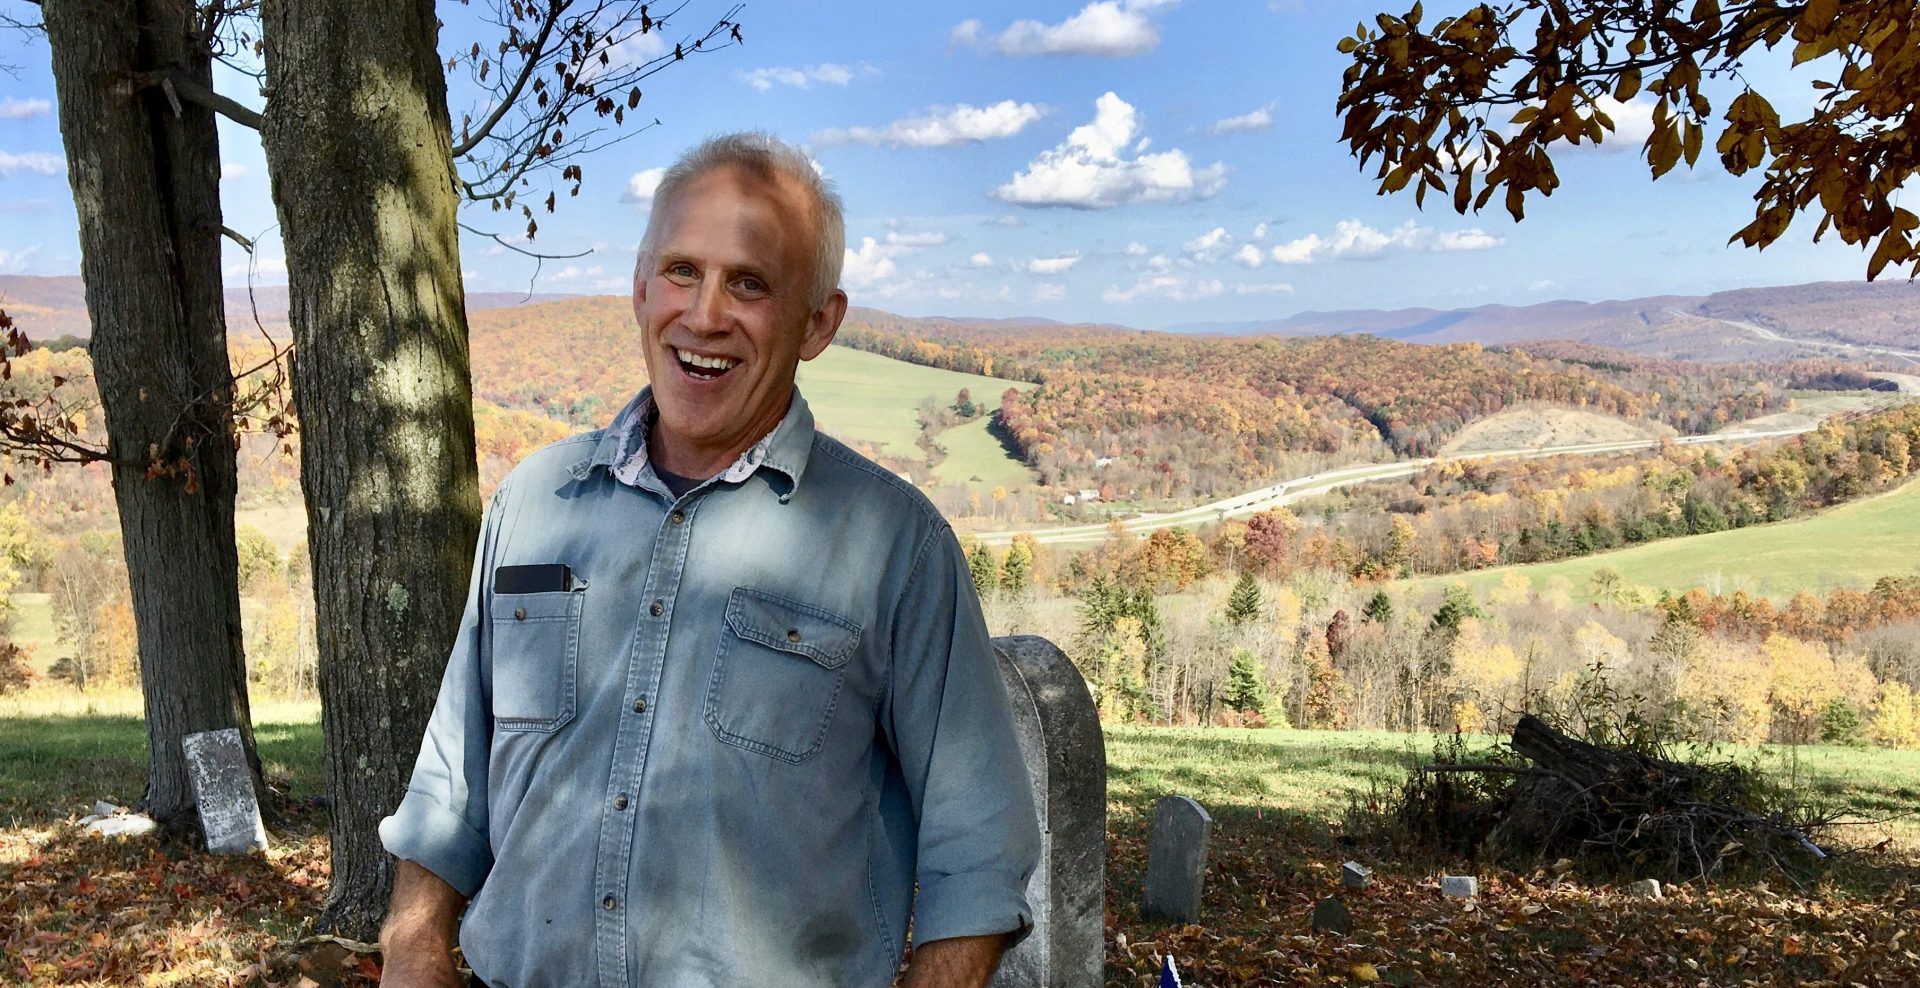 As election nears, Pennsylvania farmers — who see effects of climate change up close — have a list of things they'd like to see from government leaders | StateImpact Pennsylvania - StateImpact Pennsylvania